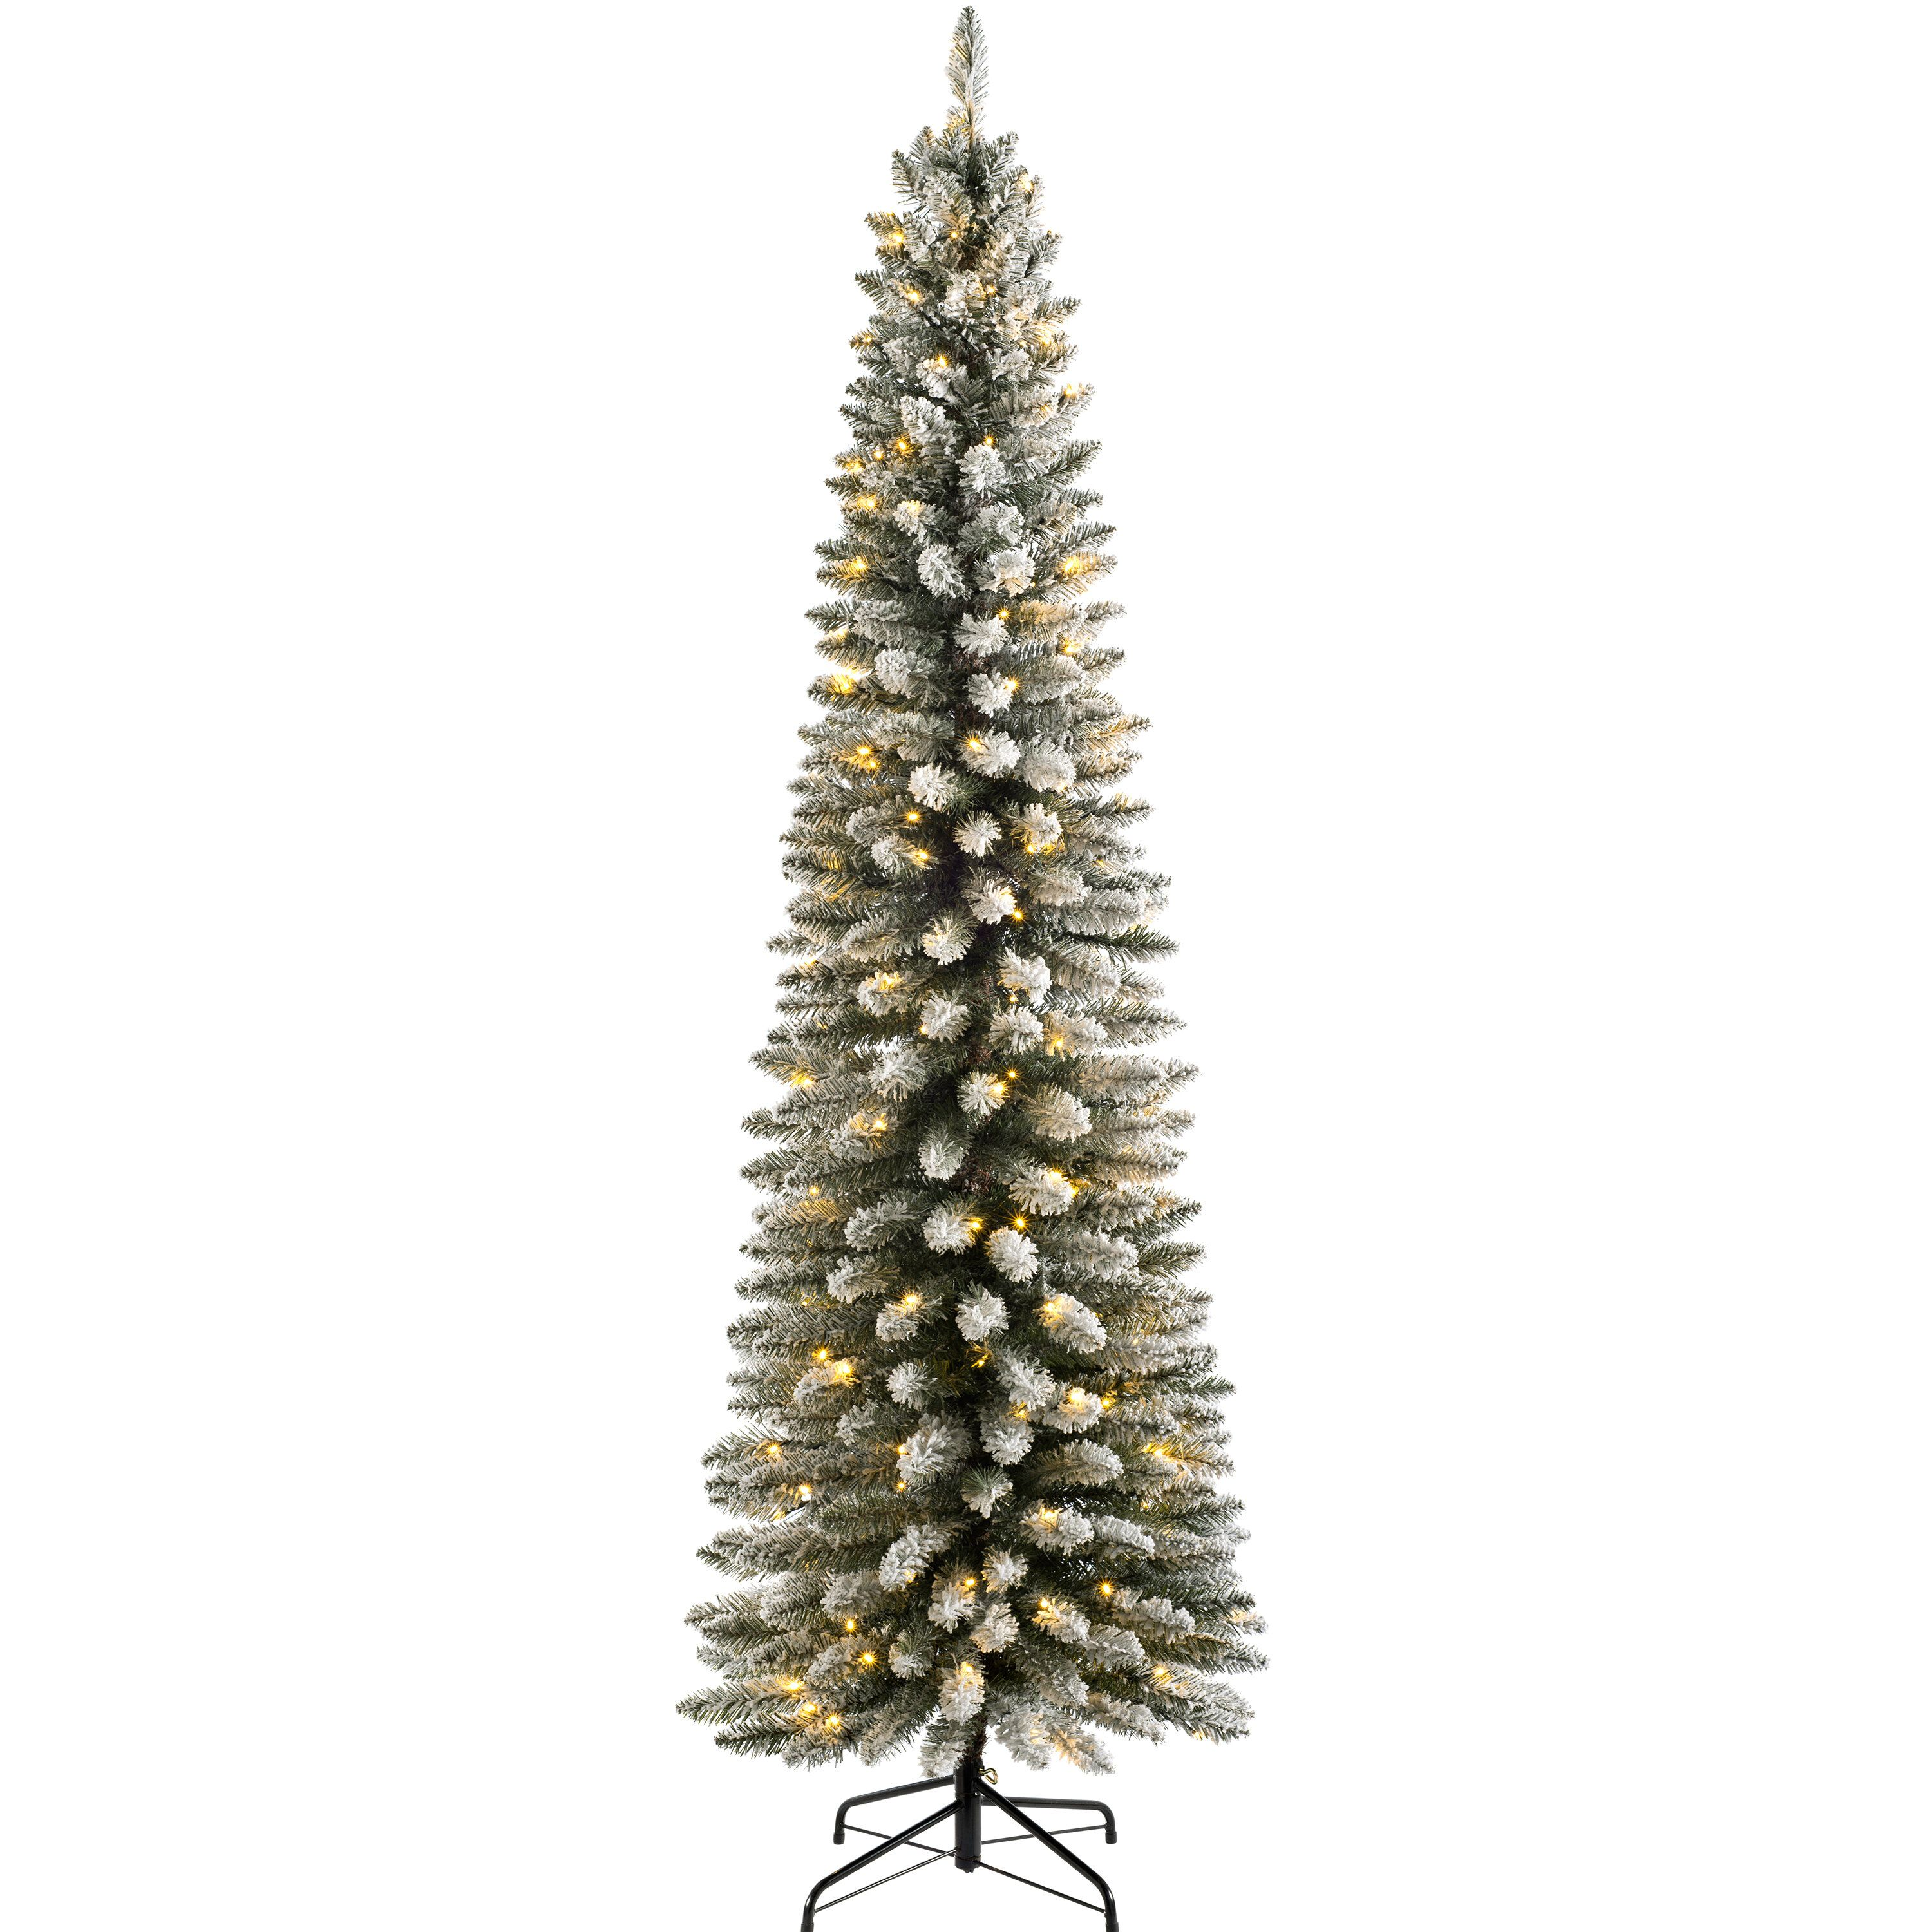 Christmas Tree Snow.Pencil 6 5ft Snow Flocked Artificial Christmas Tree With 180 Clear And White Lights